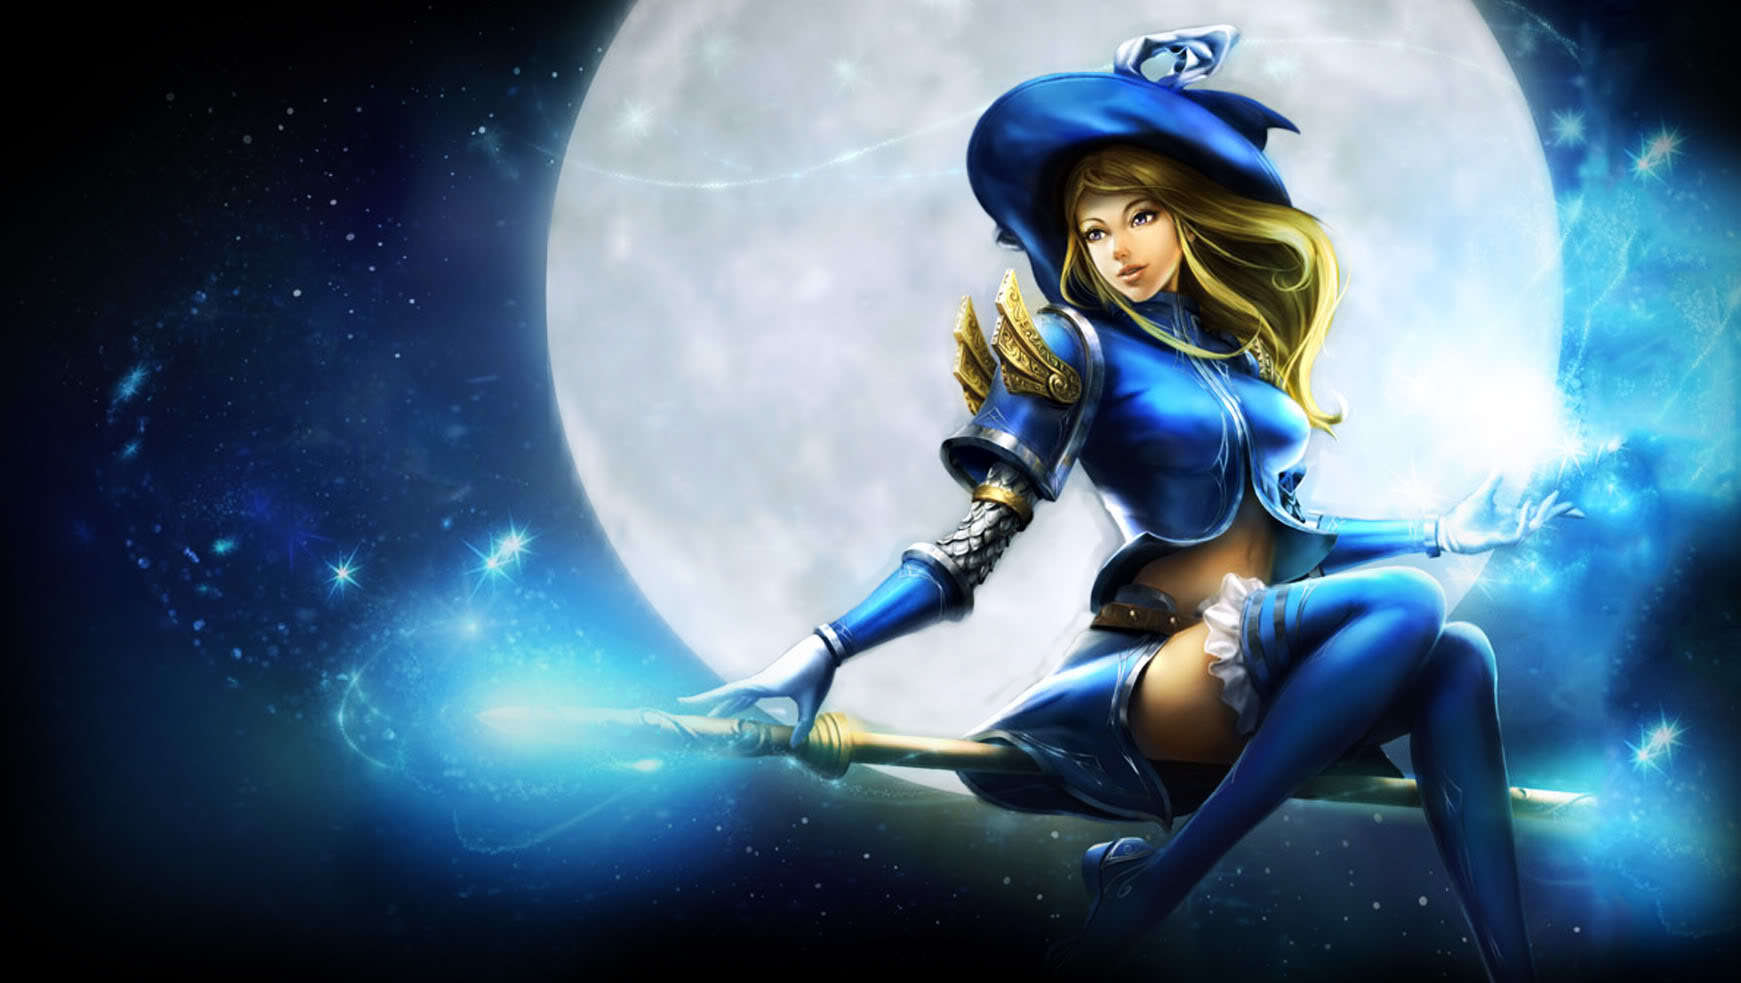 Sorceress Lux League Of Legends Wallpaper 36235121 Fanpop